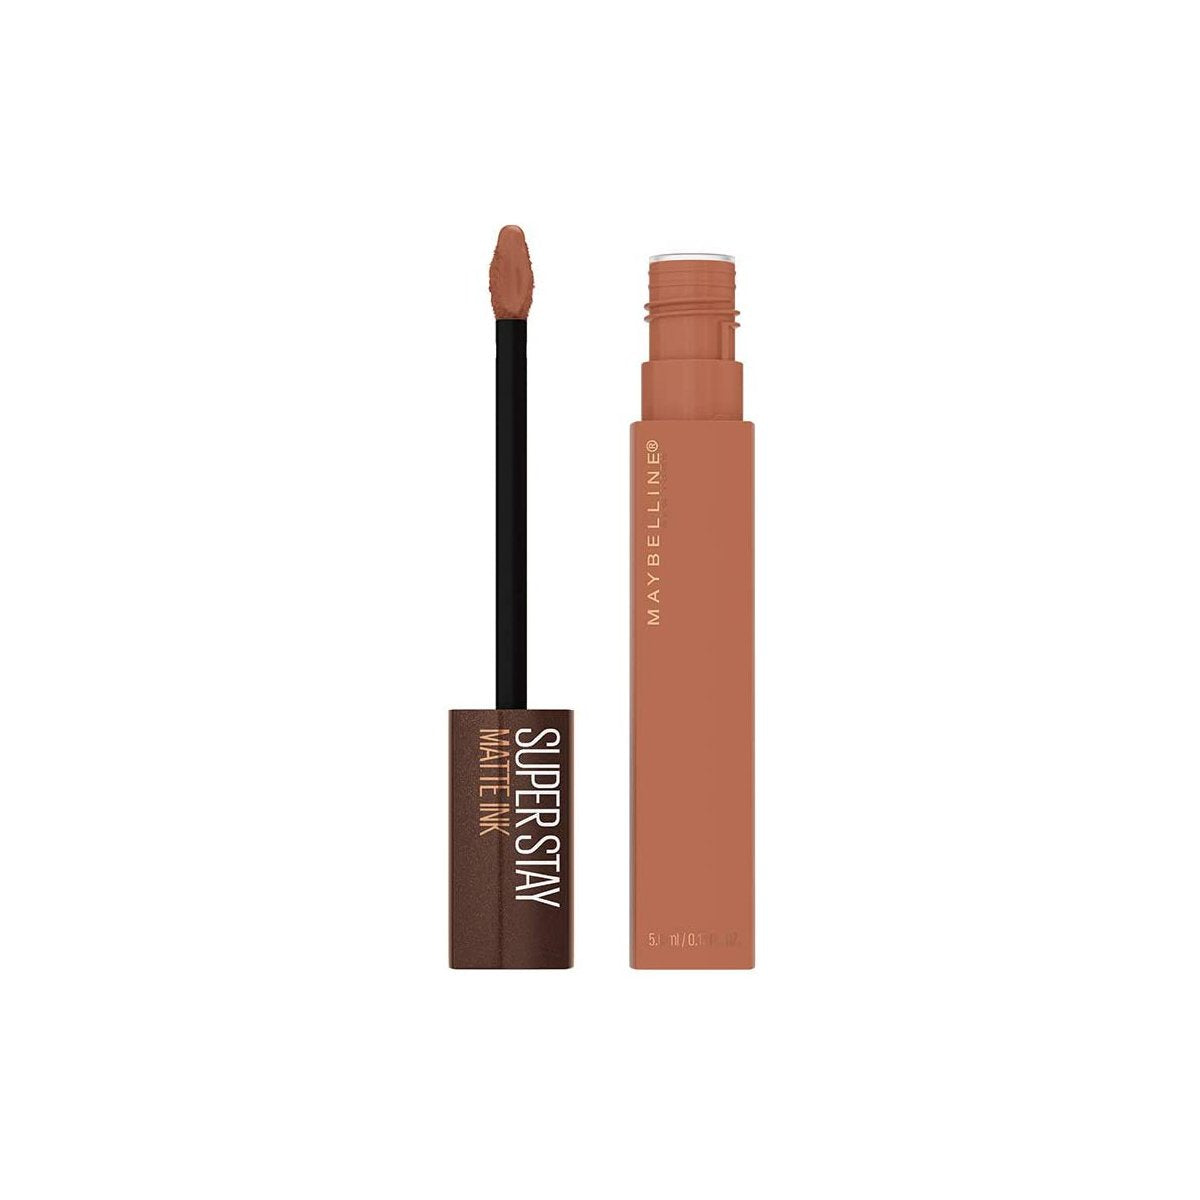 SUPERSTAY MATTE INK COFFEE 255 CHAI GENIUS - MAYBELLINE